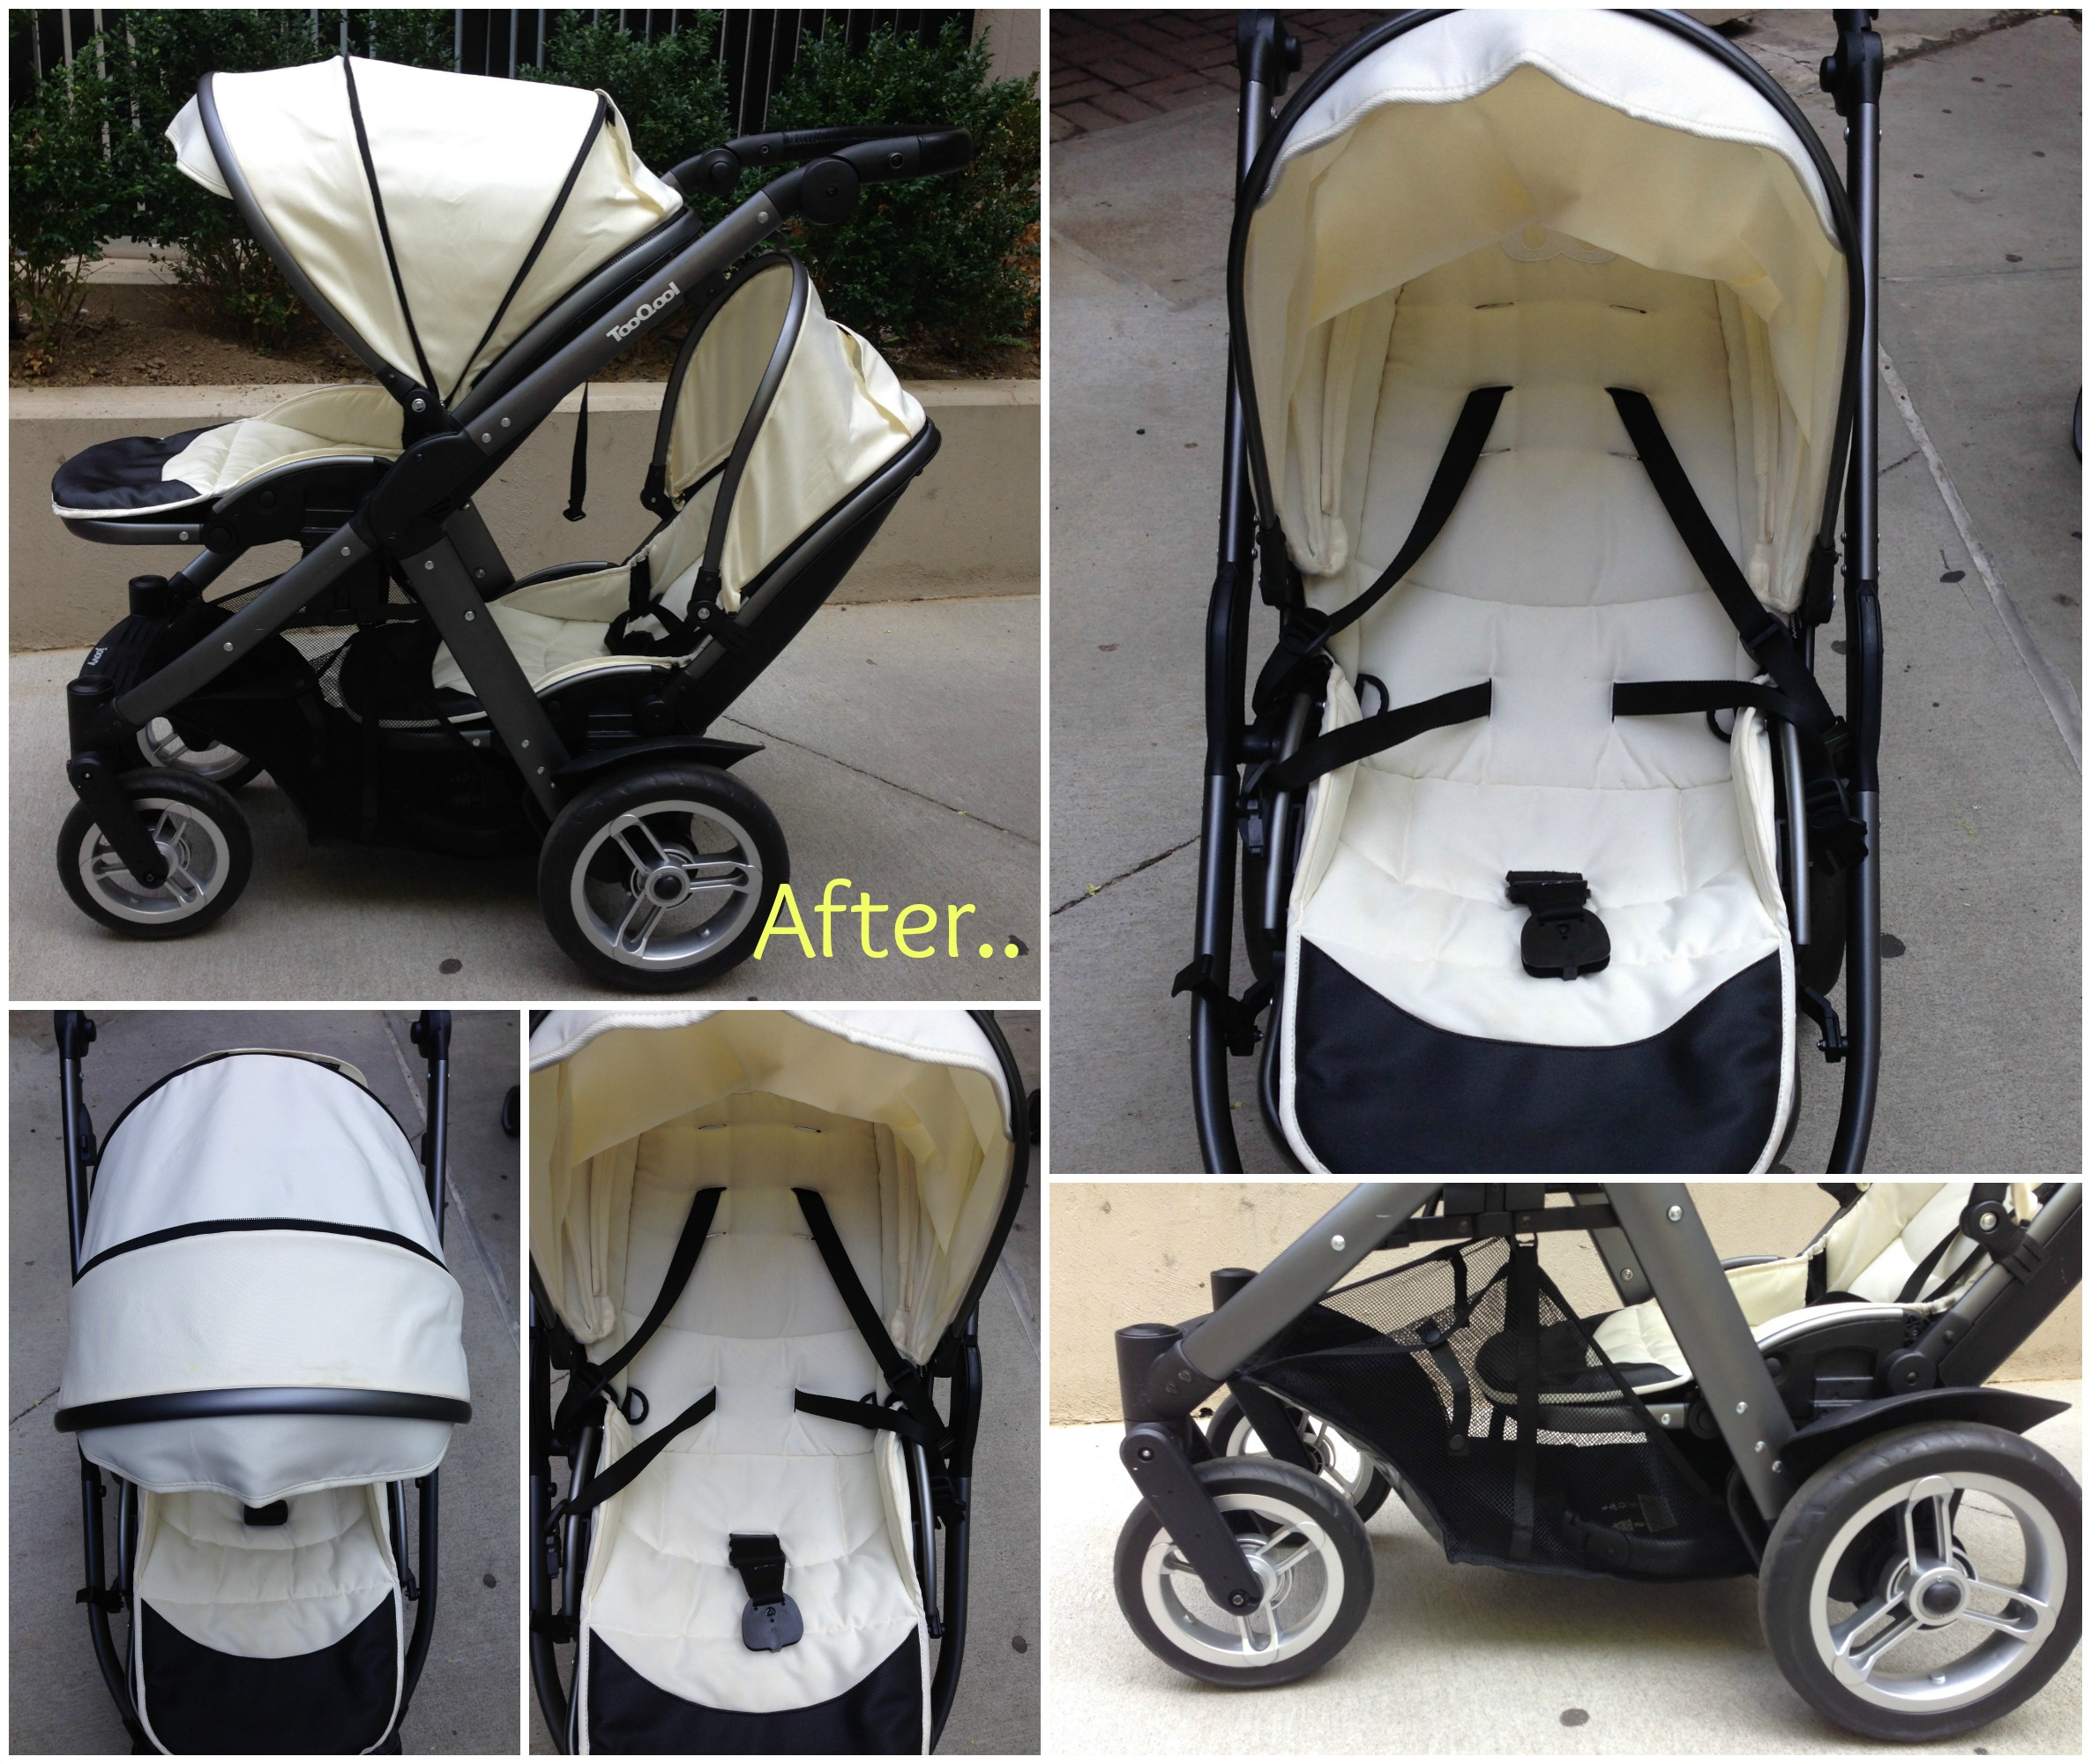 Newborn Baby Car Seat Test Dirty Stroller Try Babybubbles Stroller In The City